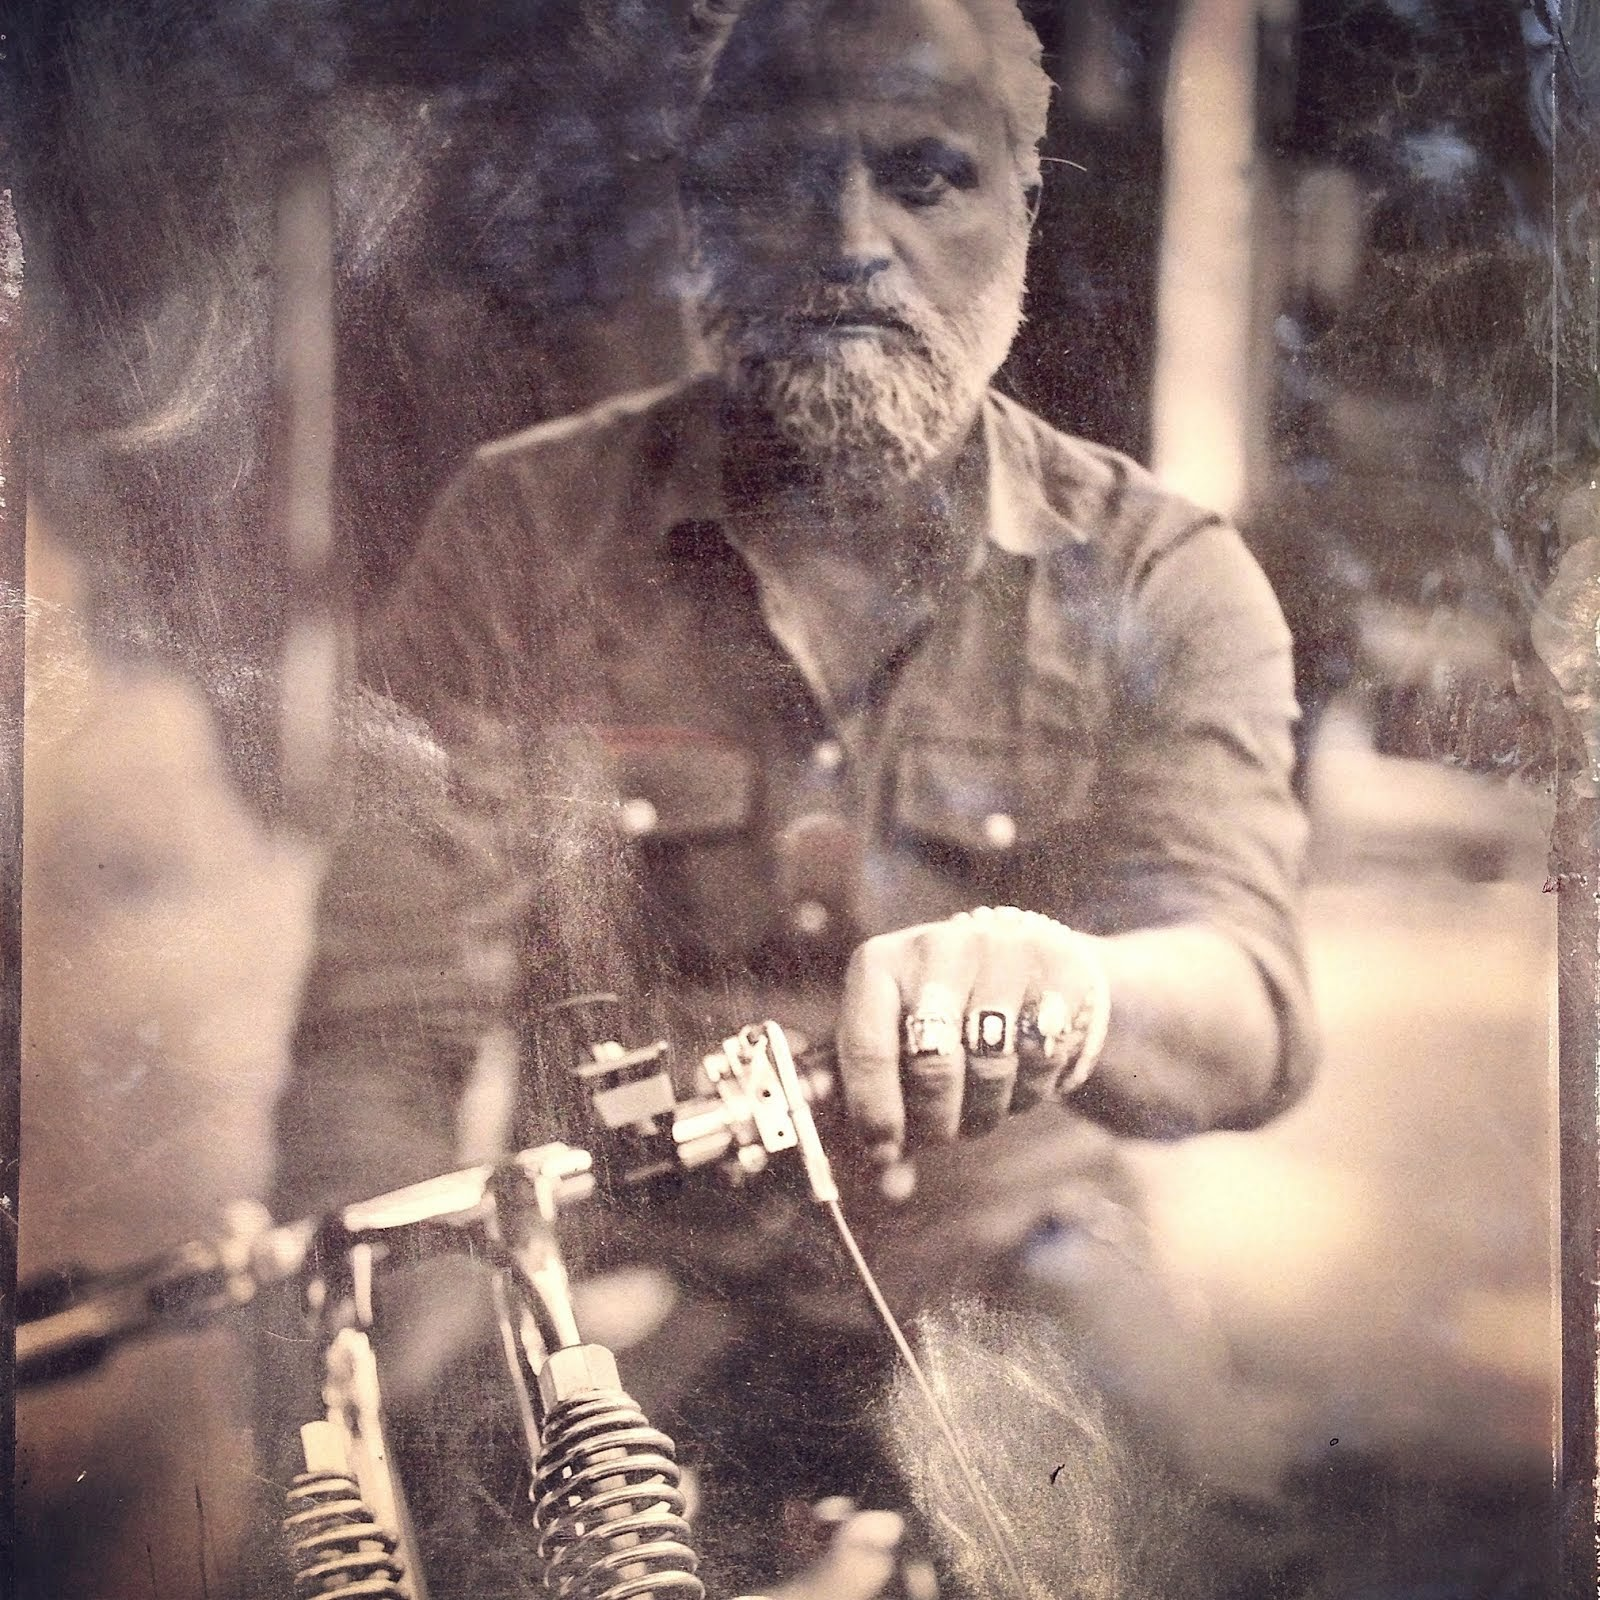 The Vintagent's 'WetPlate' Photos